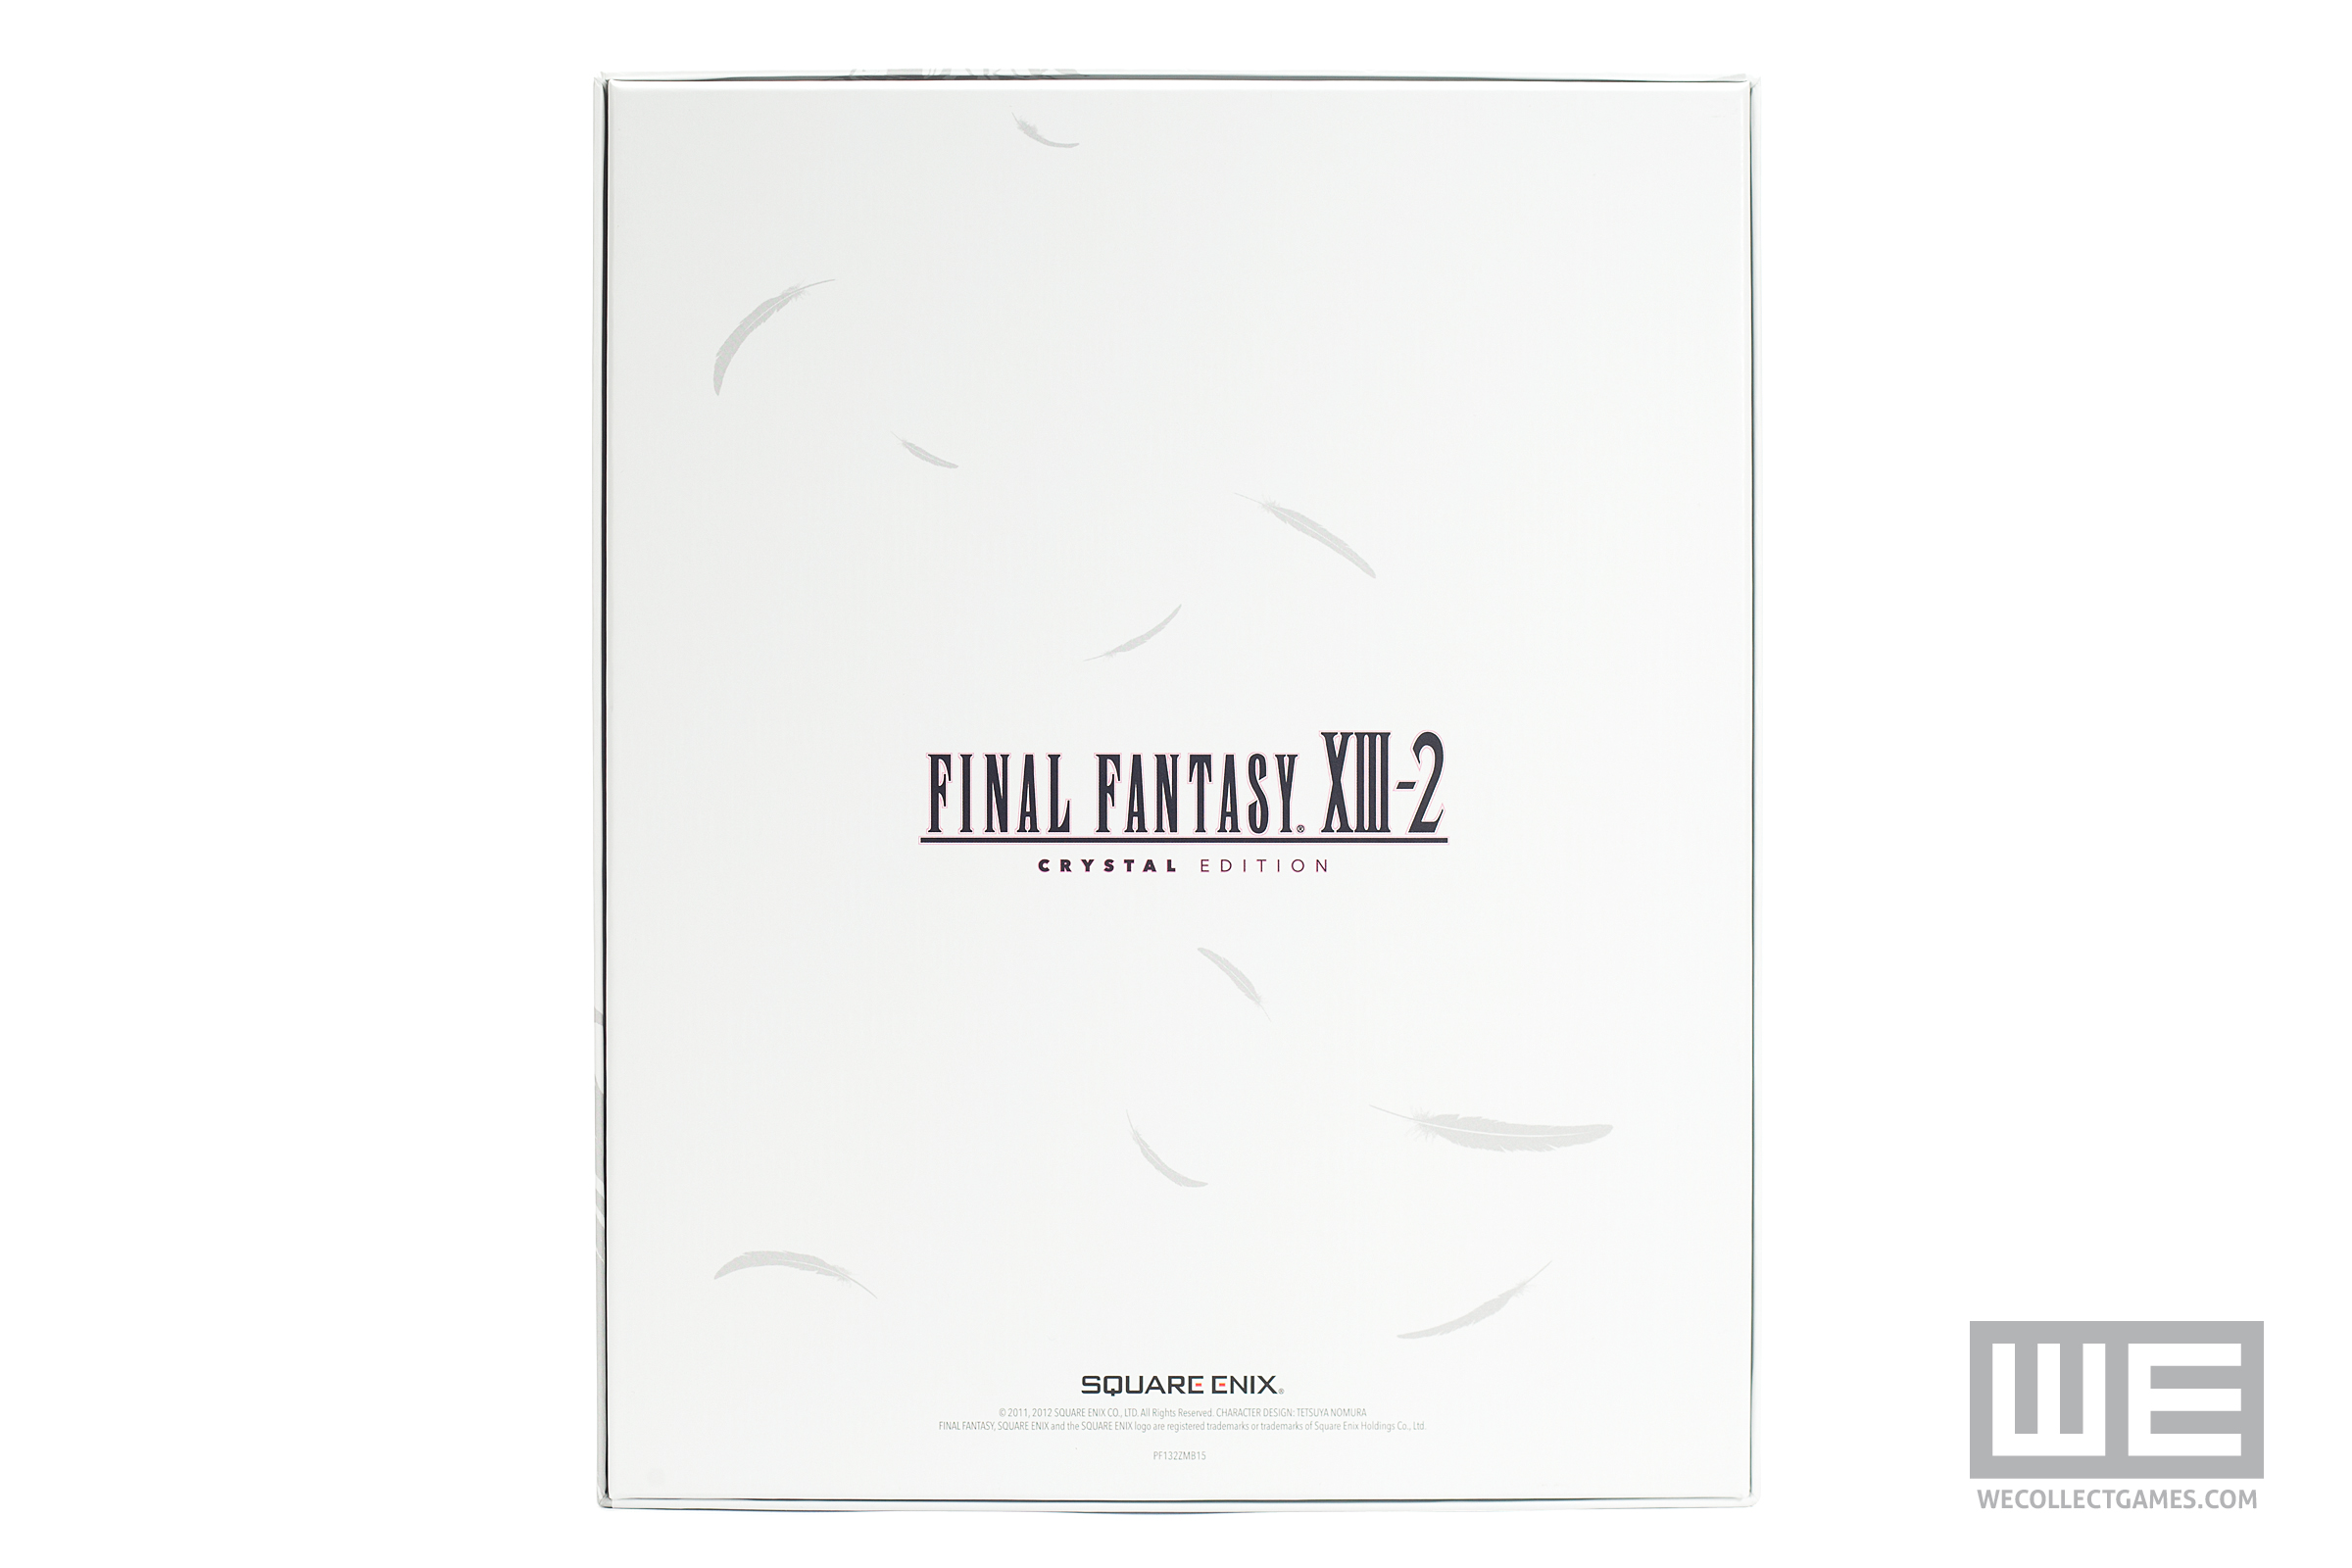 Final Fantasy Xiii 2 Crystal Edition